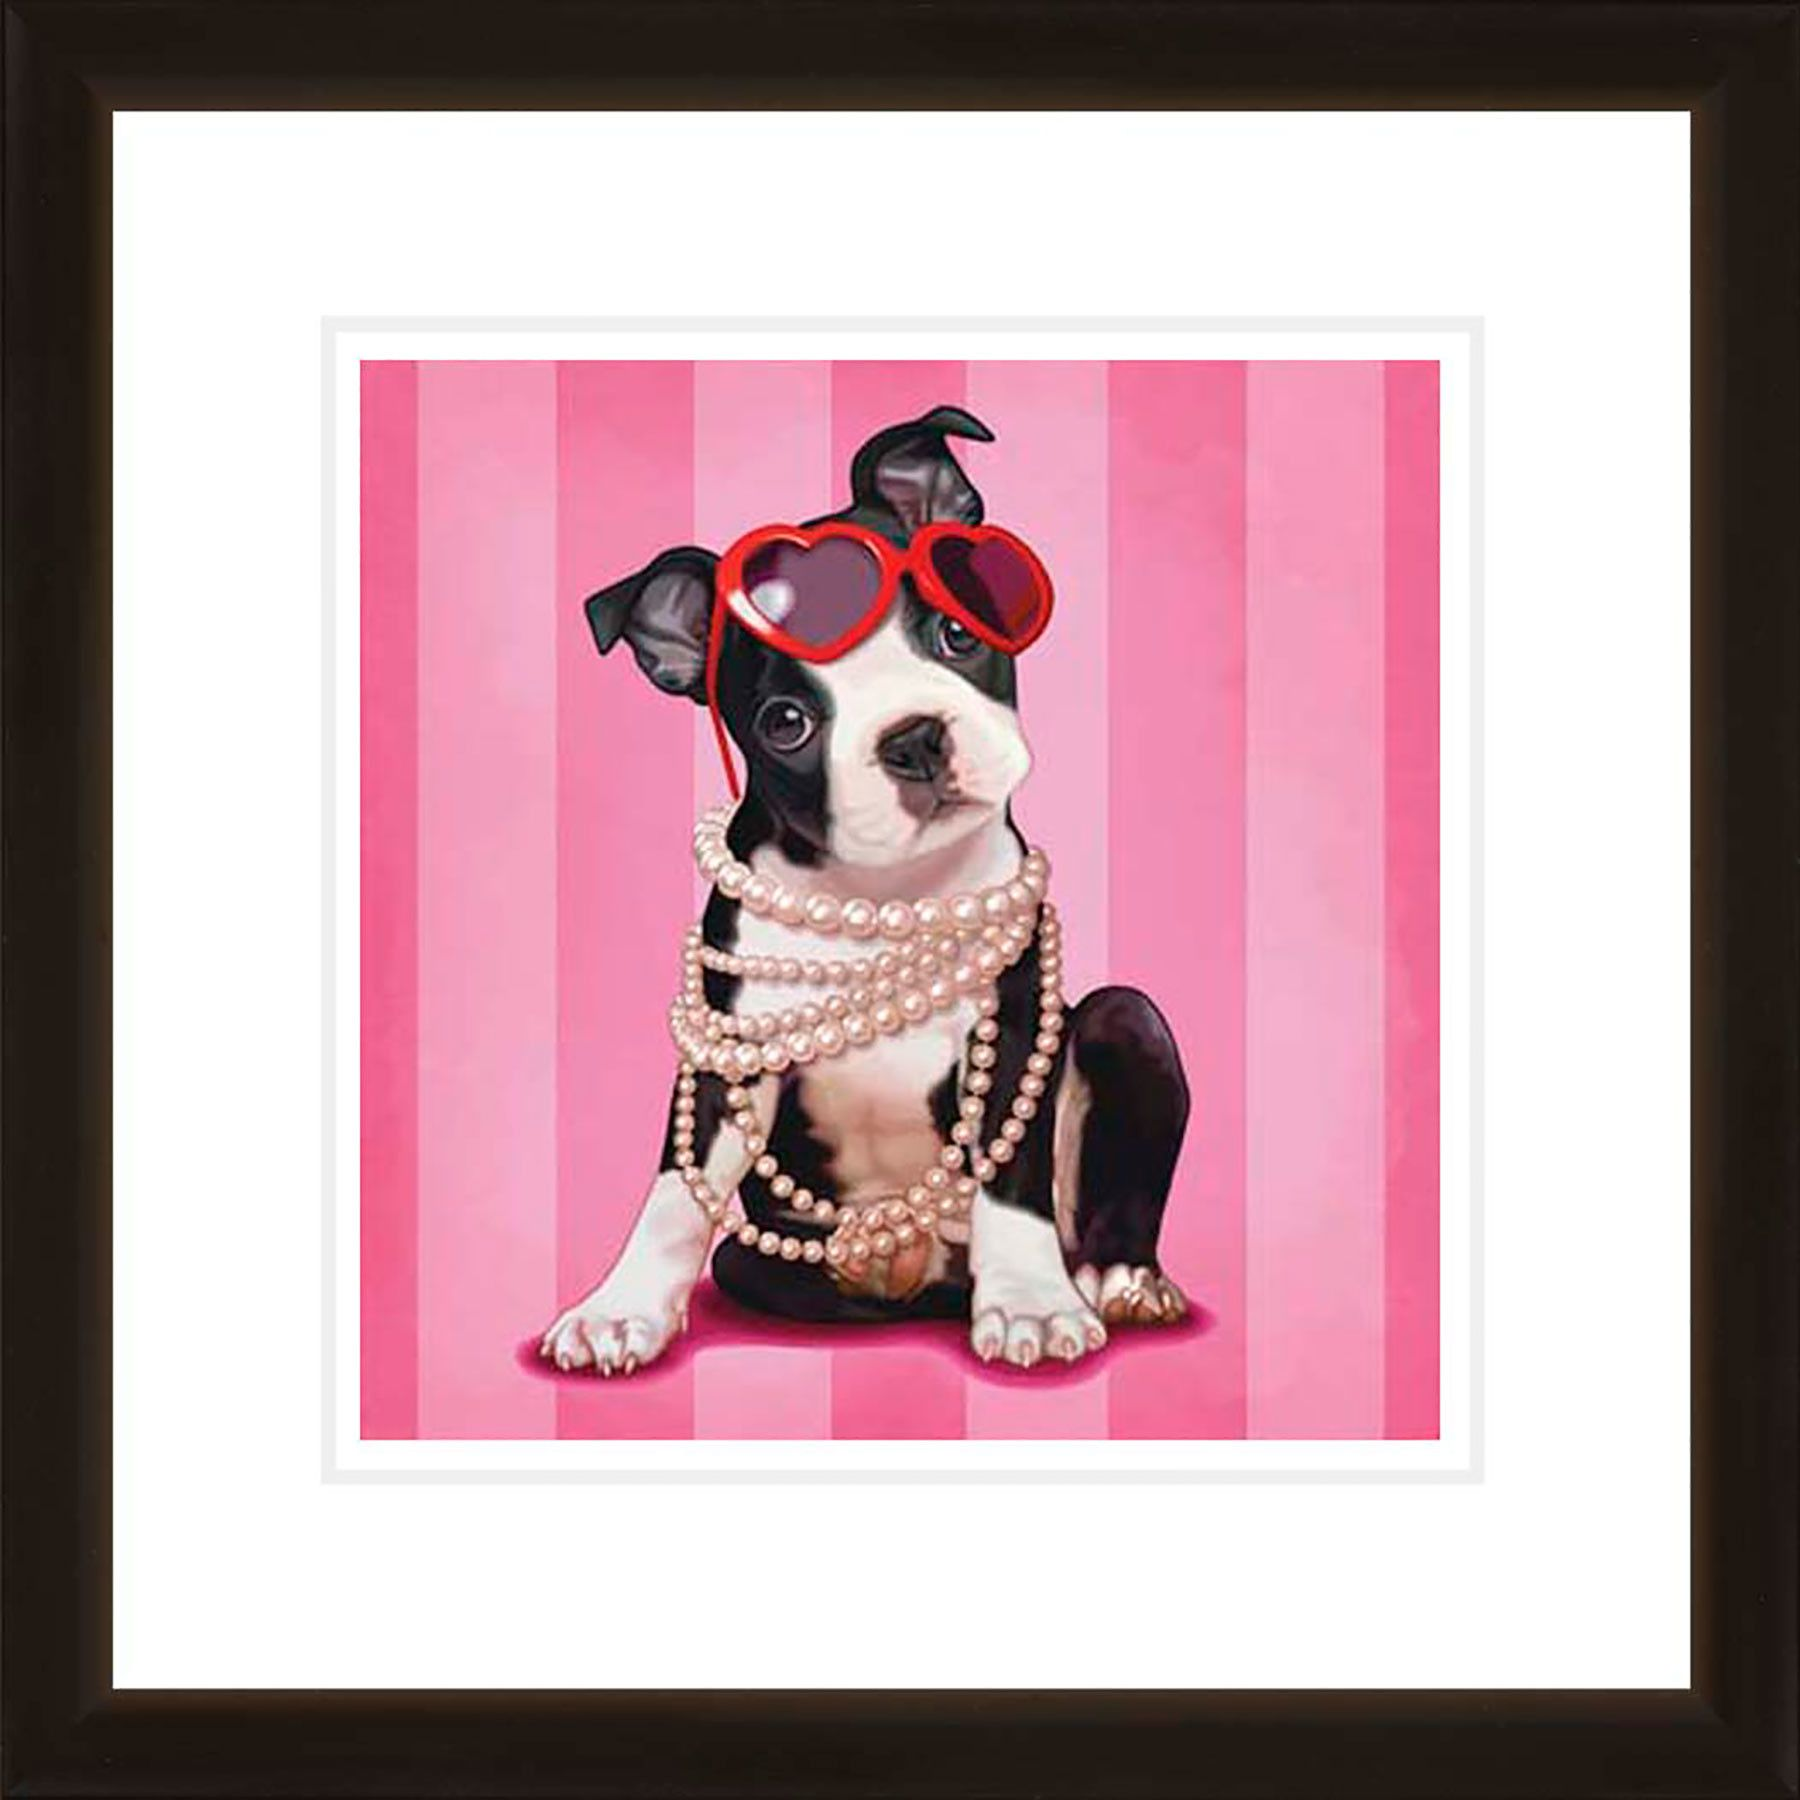 Ptm images chic pup framed graphic art wales ave decor inspiration